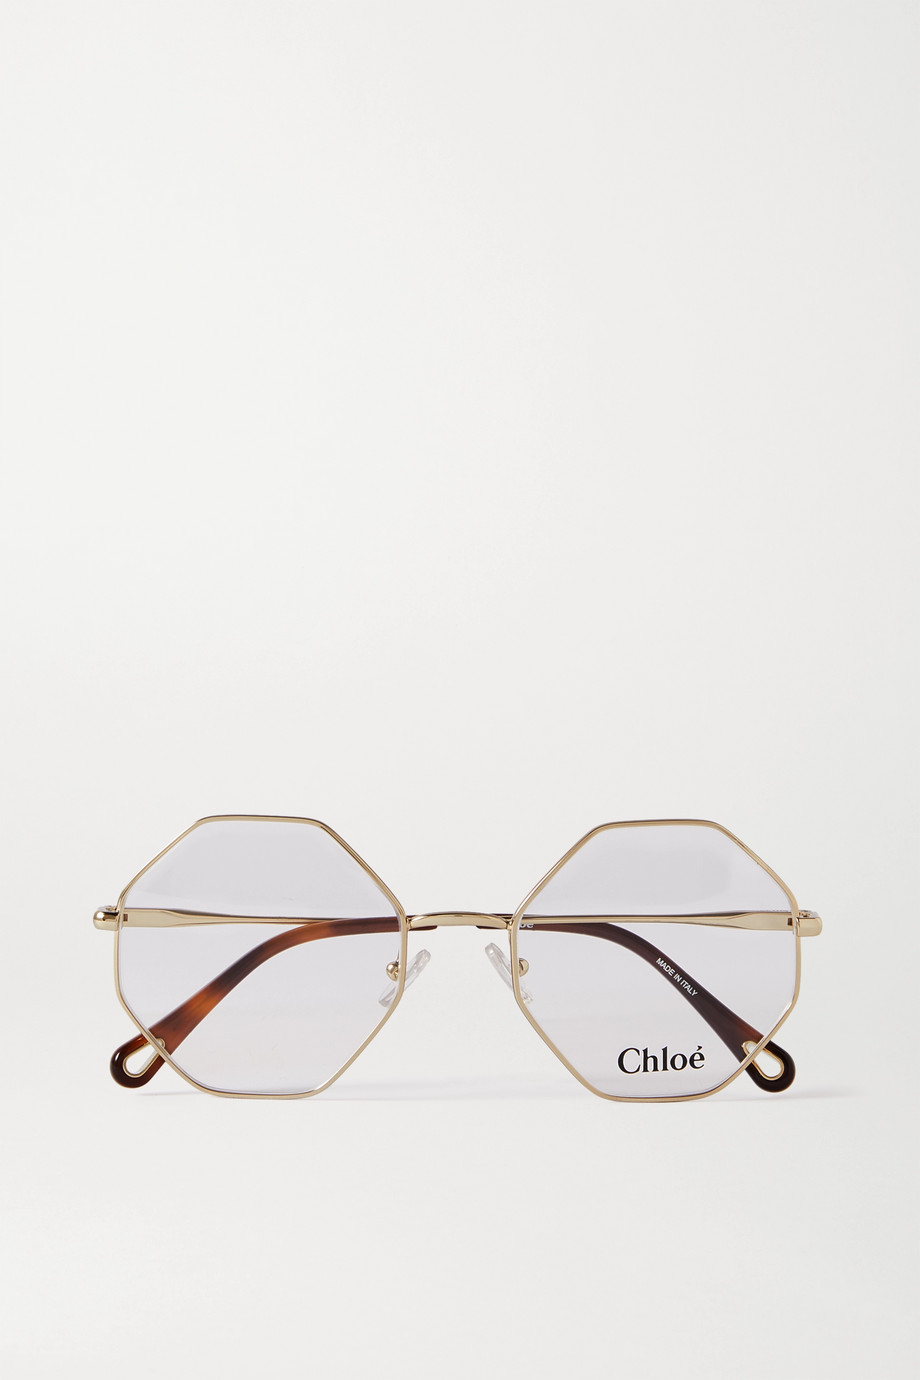 CHLOÉ Octagon-frame gold-tone optical glasses